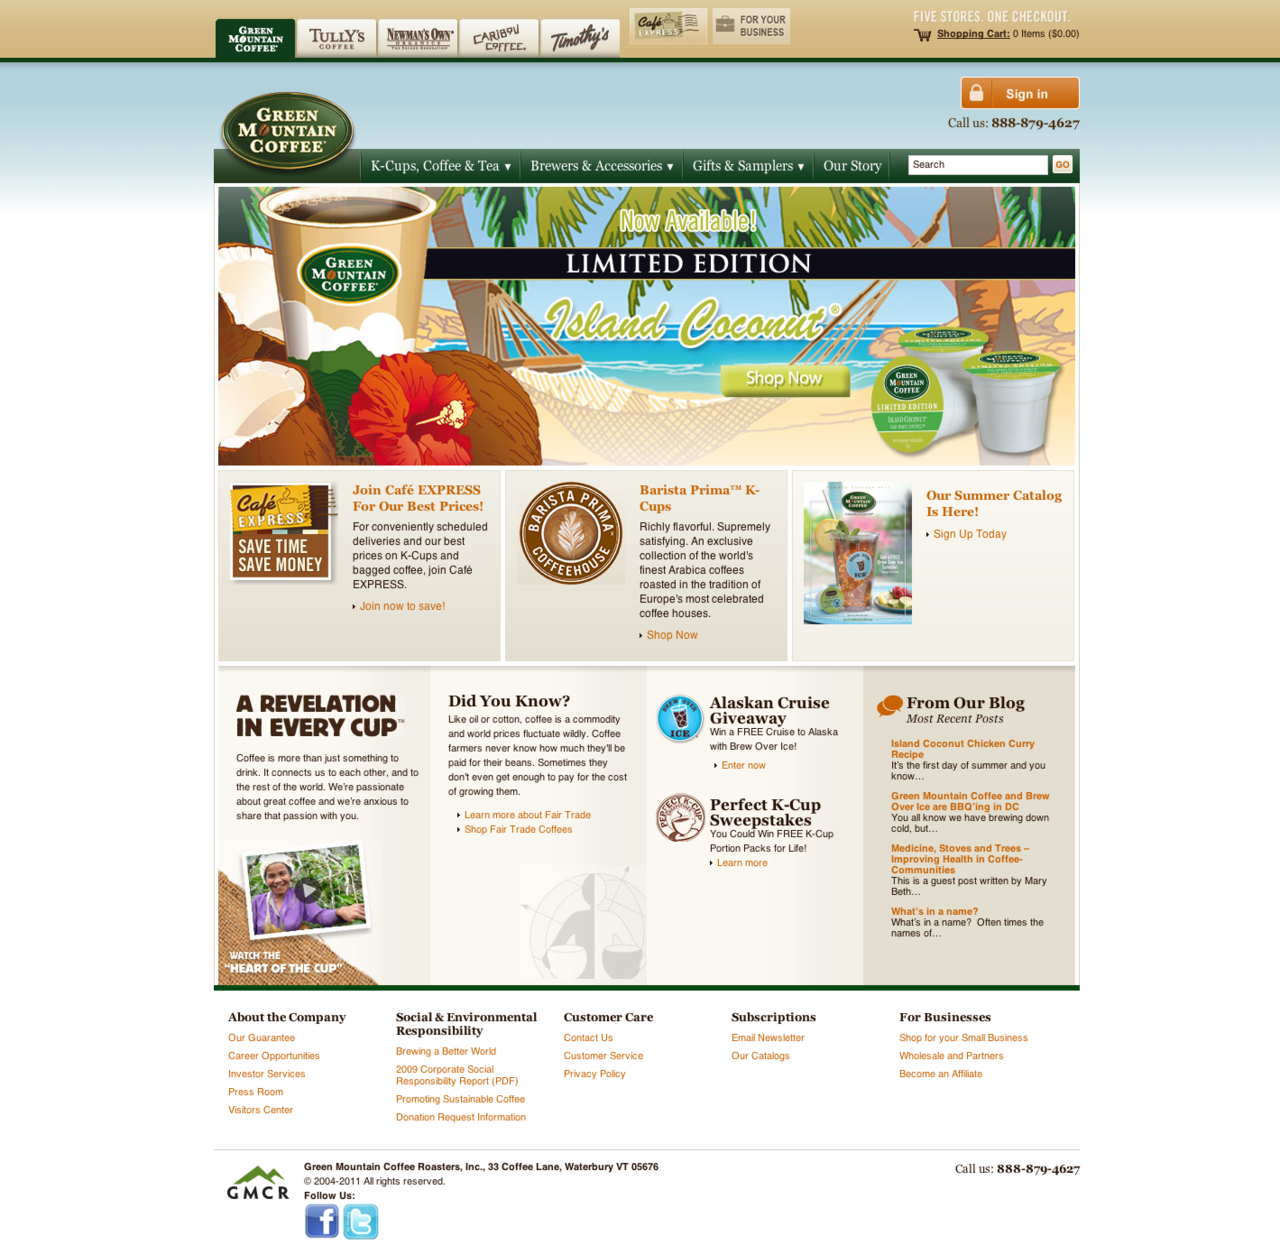 www.greenmountaincoffee.com